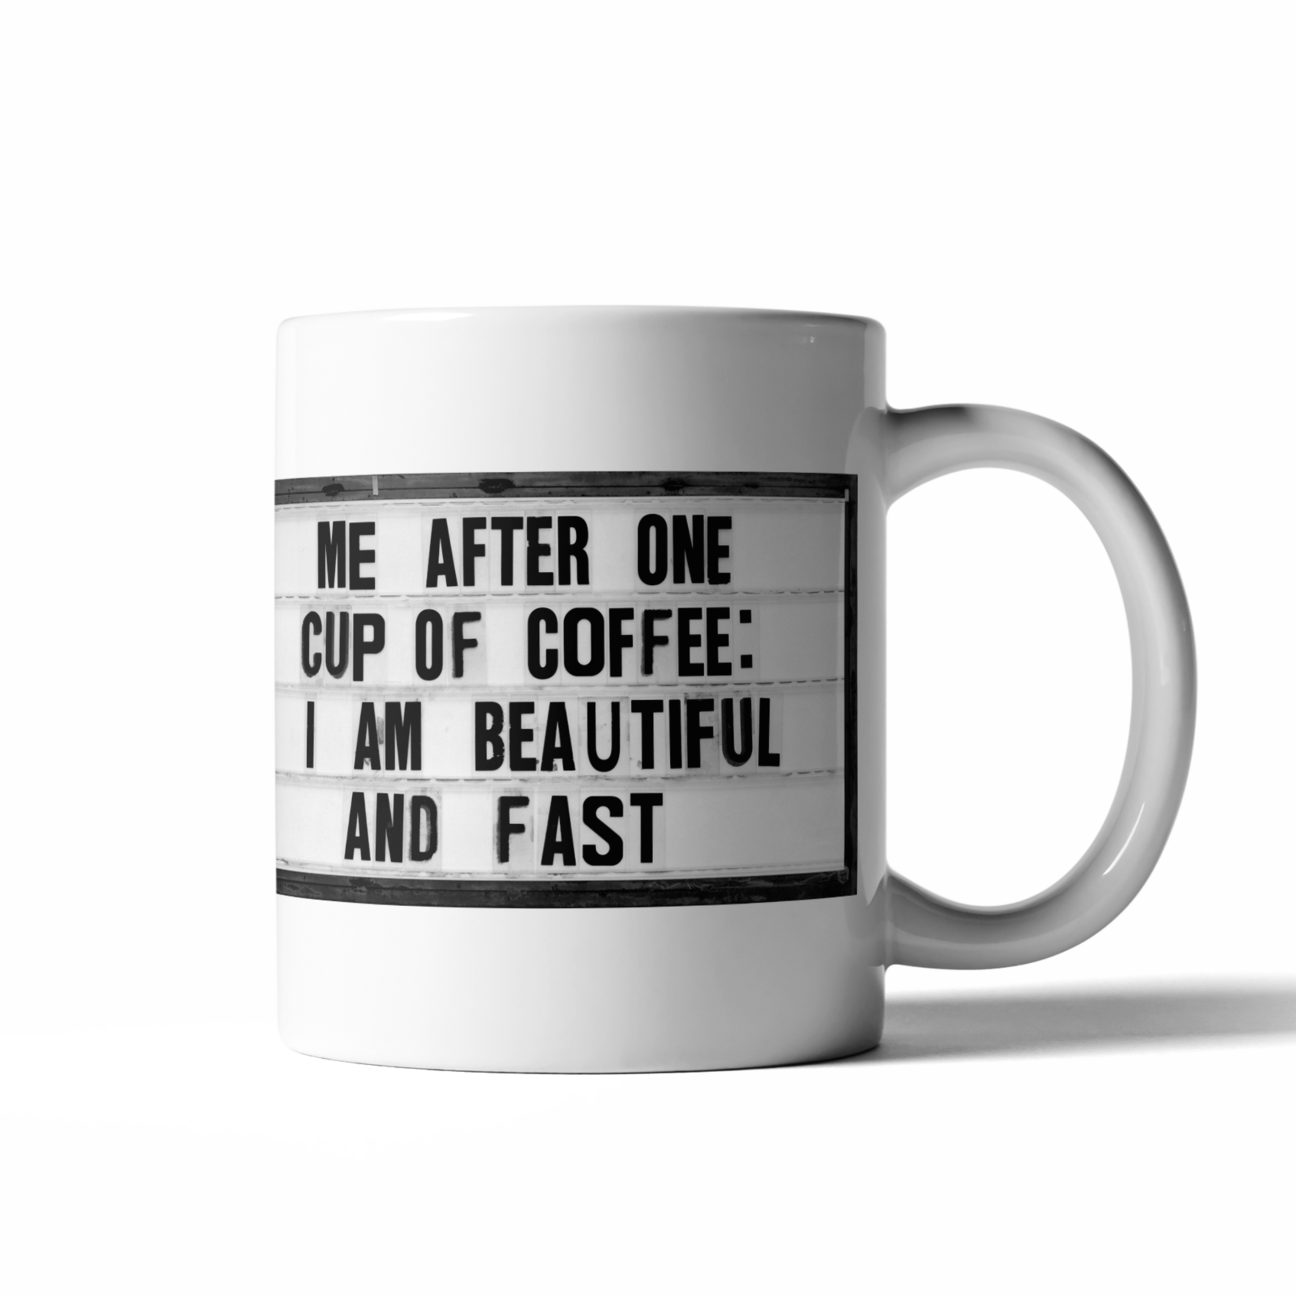 Me after one cup of coffee: I am beautiful and fast  Start your day with a little fun with these perfectly sized 16 oz coffee mugs.   16 oz  microwave and dishwasher safe